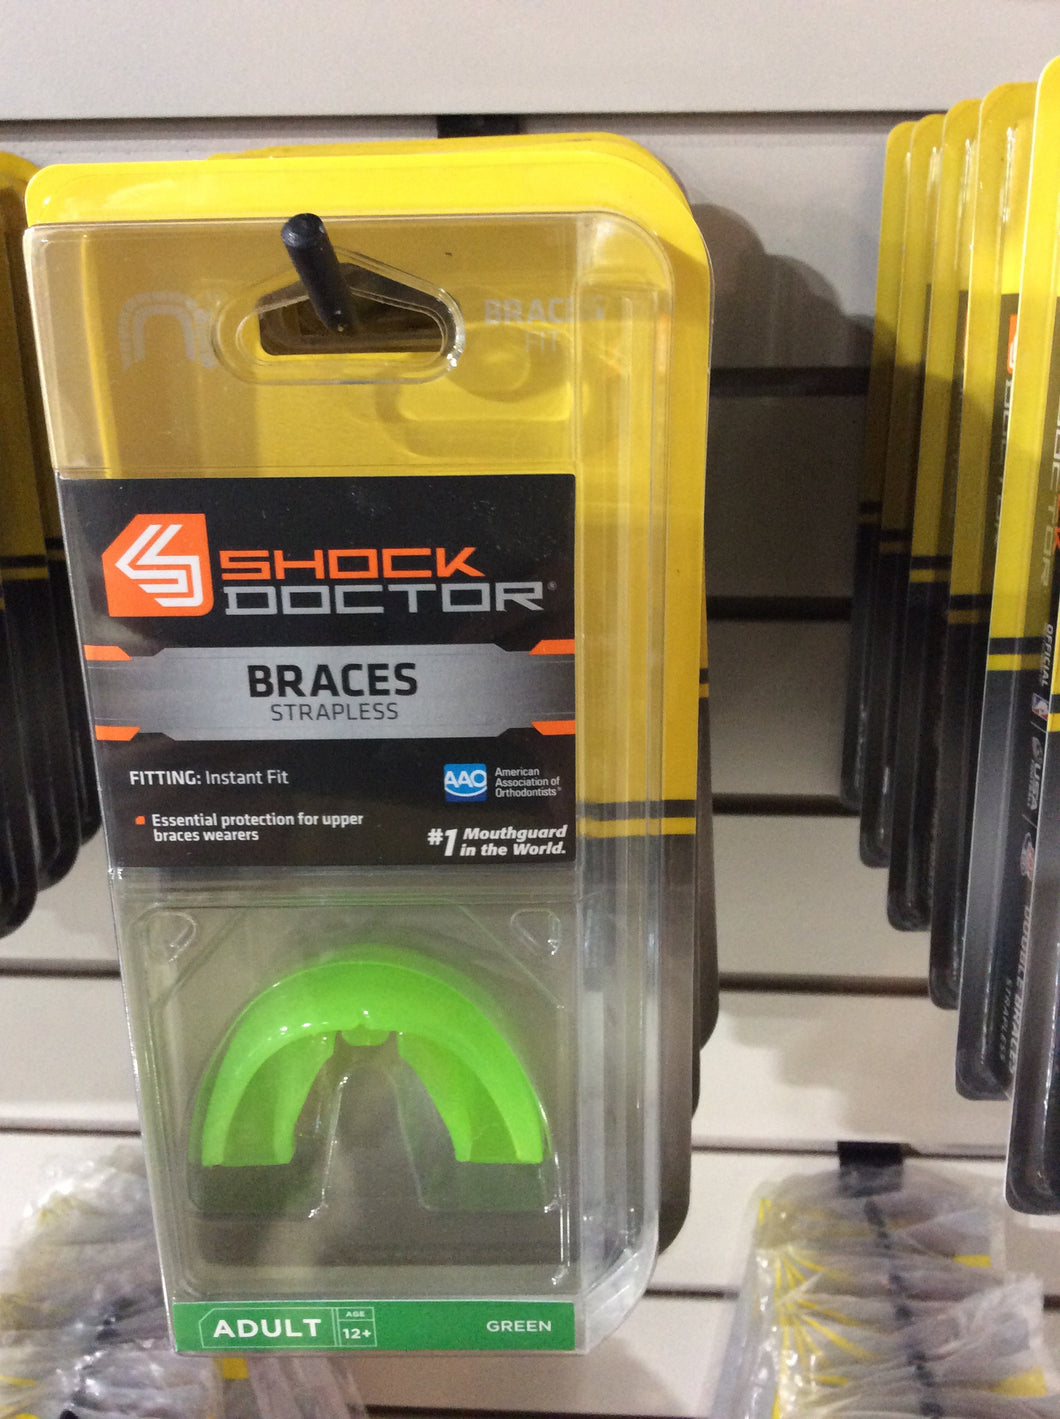 Braces Strapless mouthguard